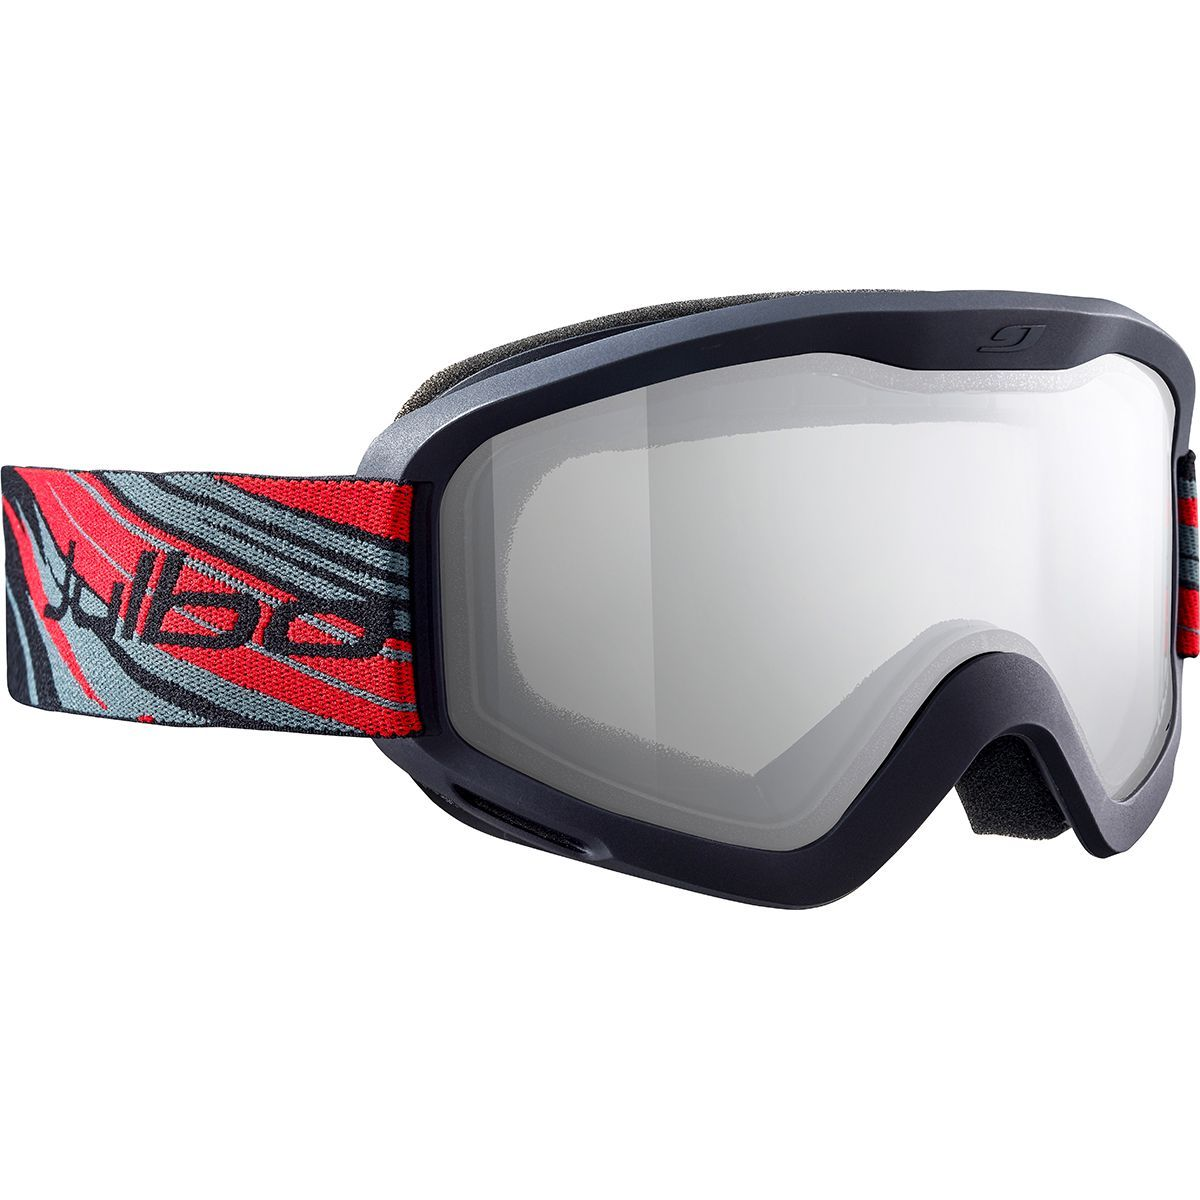 Julbo Plasma Cat 0, in Red/Black colours shown front/side on